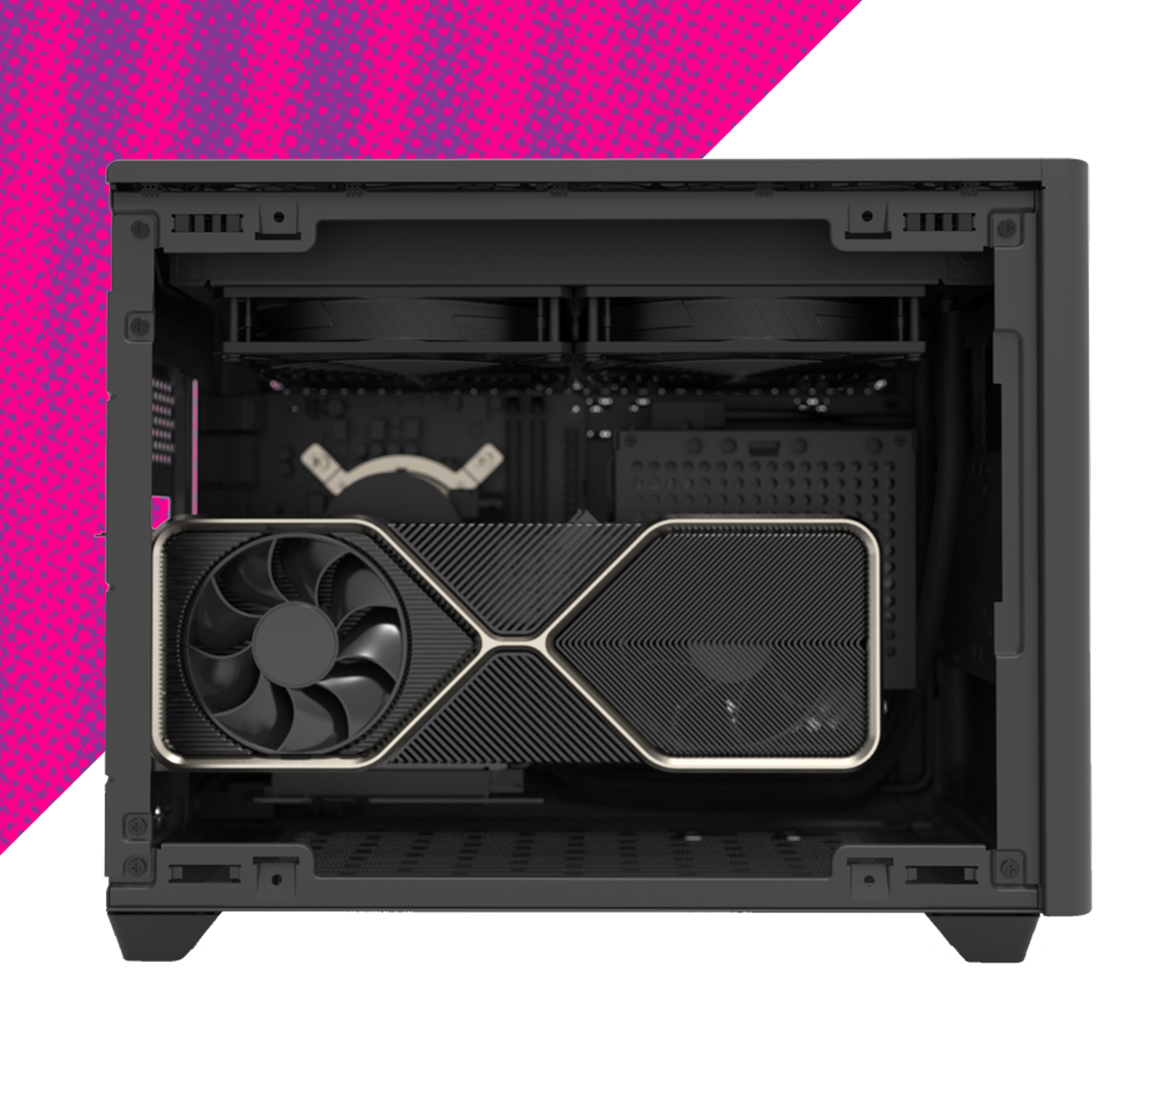 Designed For High-End ITX Systems